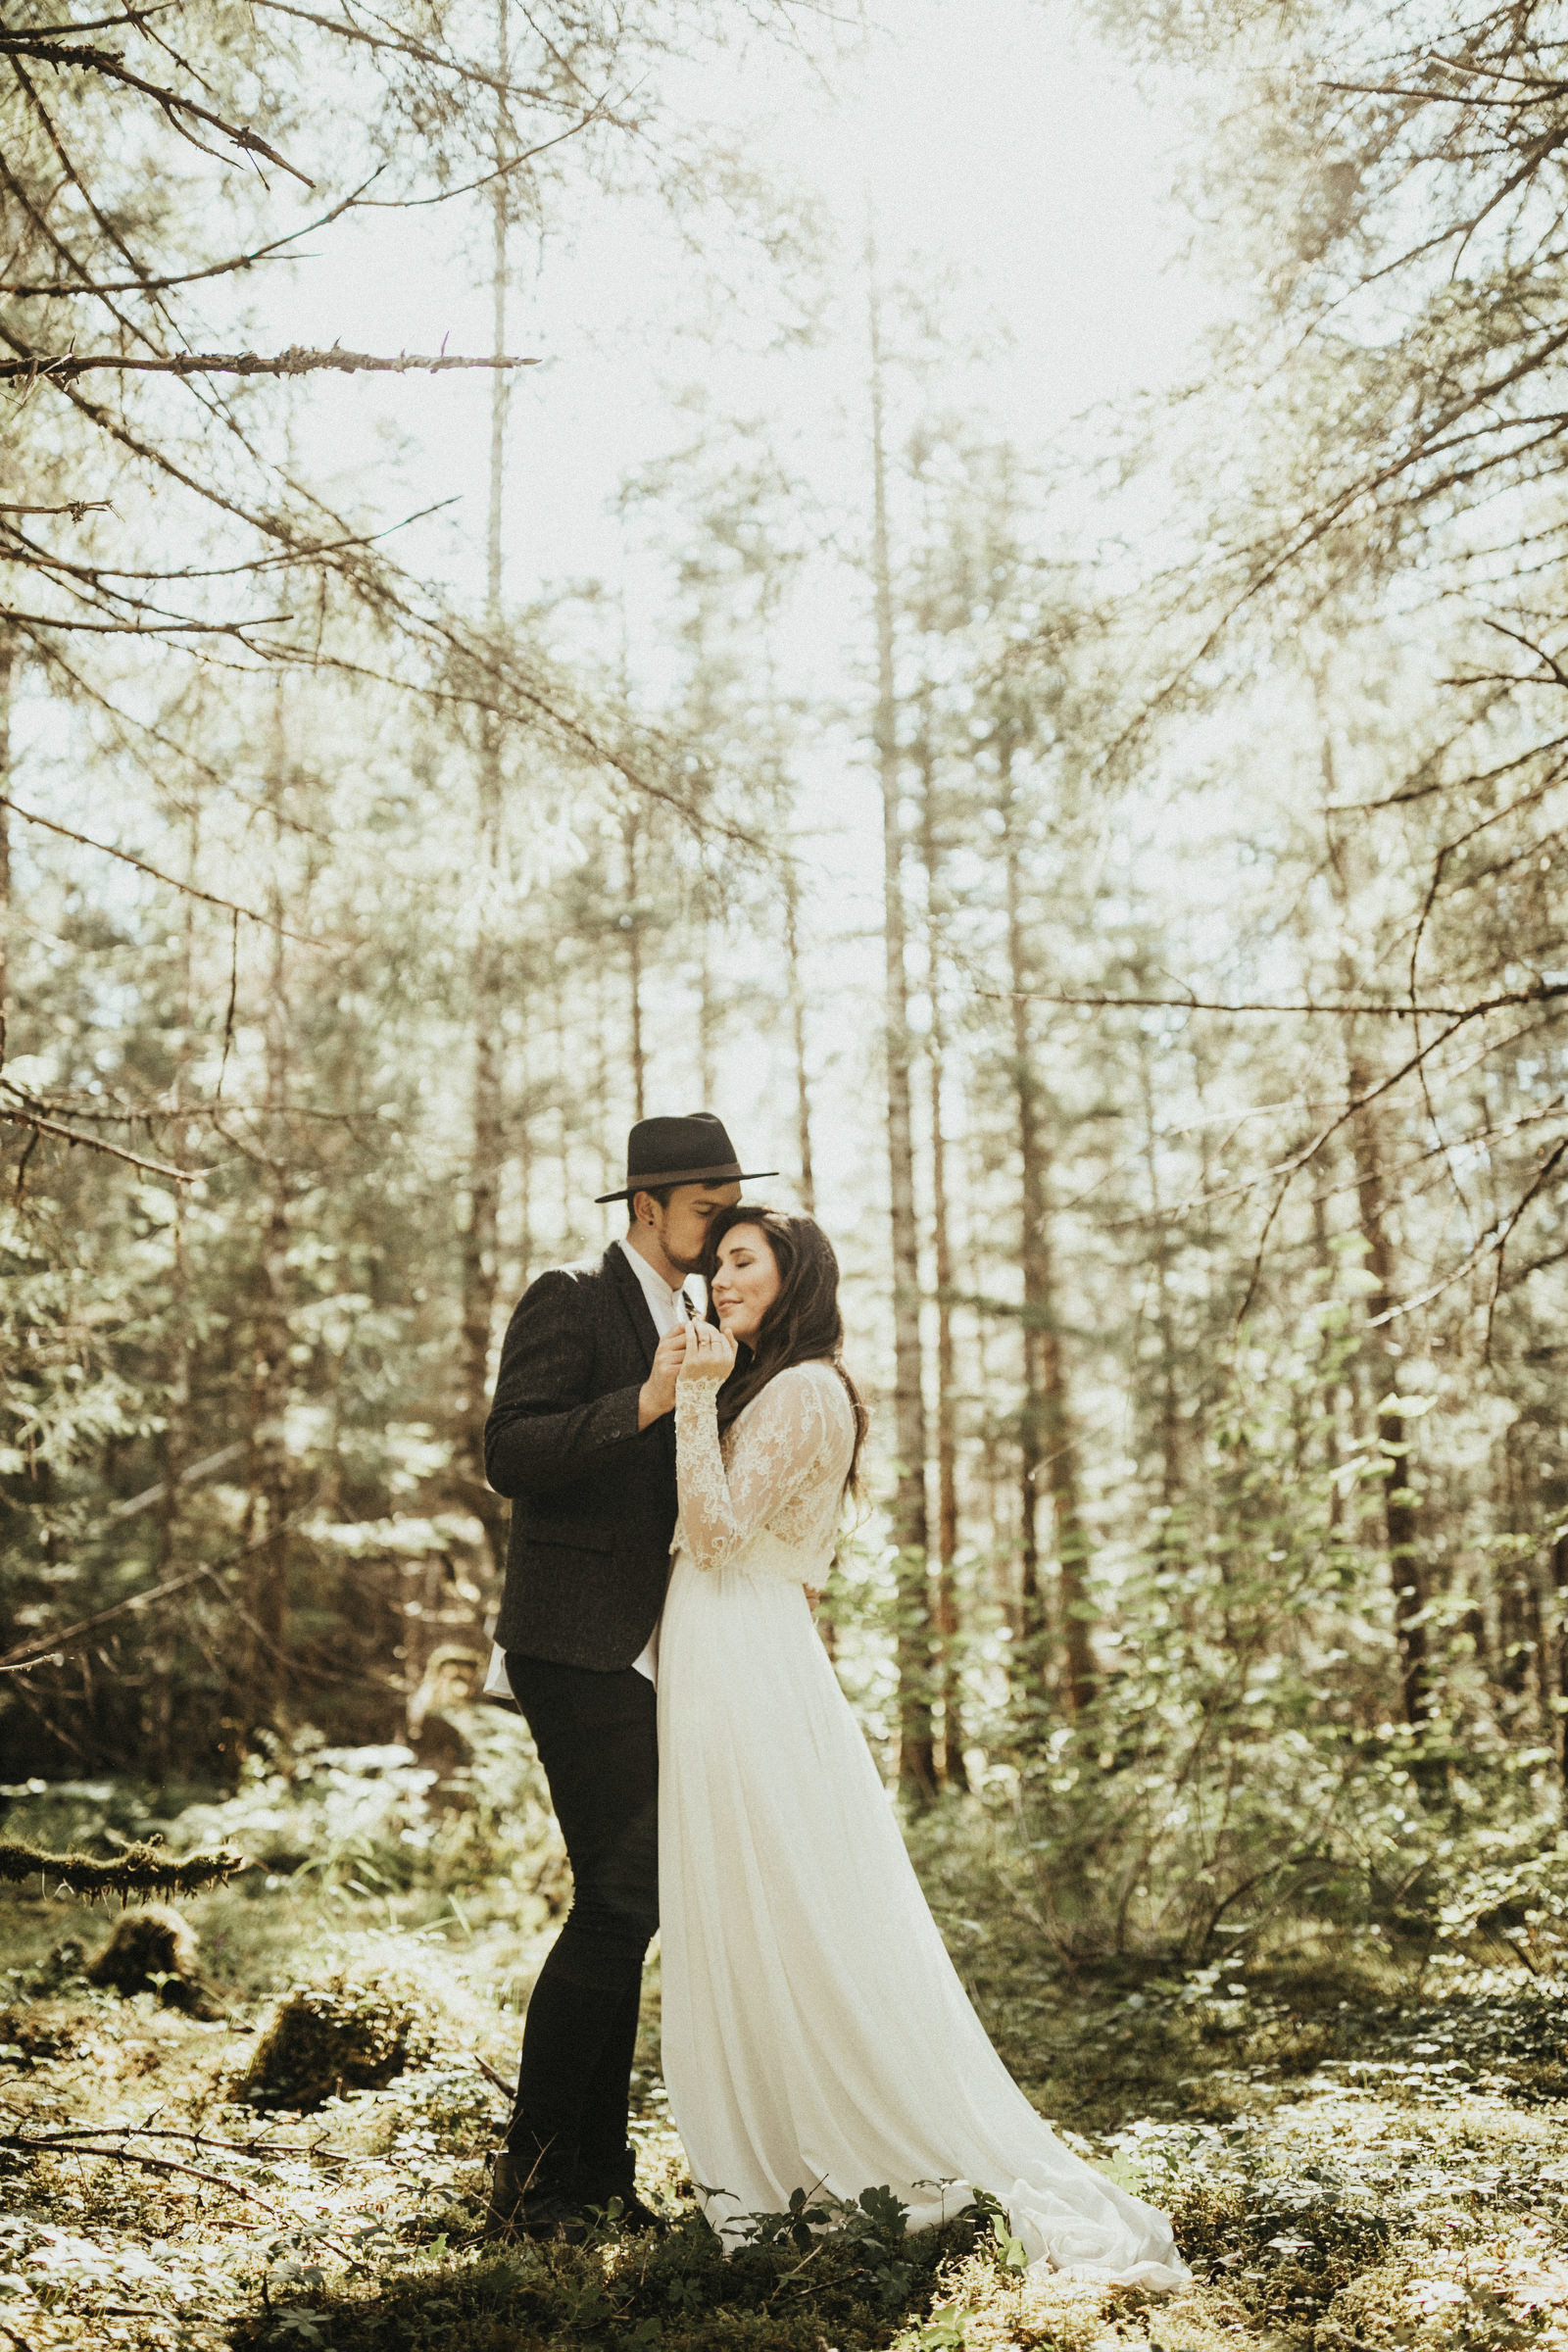 athena-and-camron-alaska-elopement-wedding-inspiration-india-earl-athena-grace-glacier-lagoon-wedding33